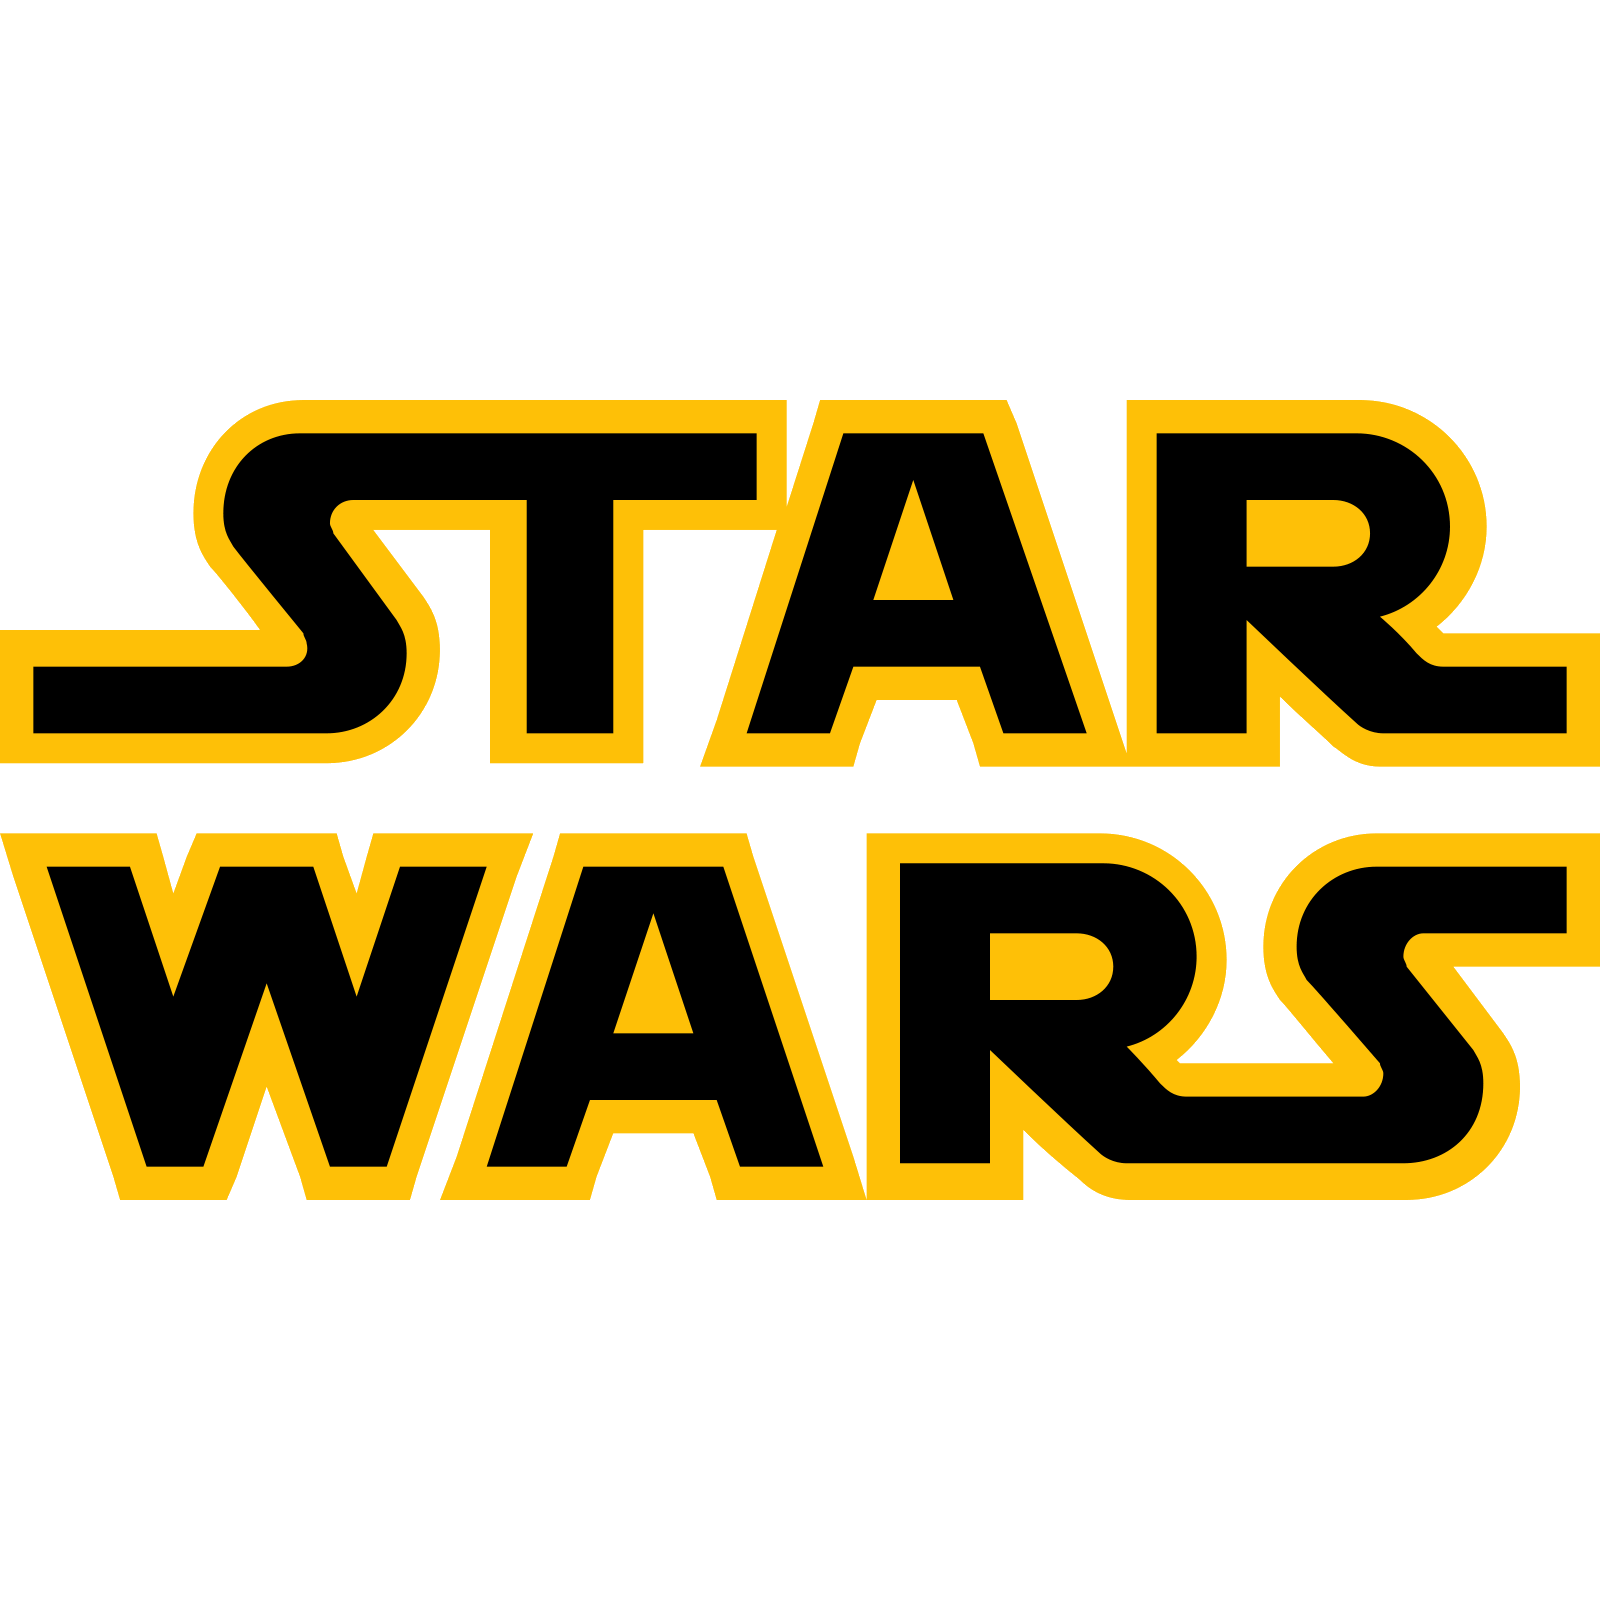 Star wars logo png. Icon free download and